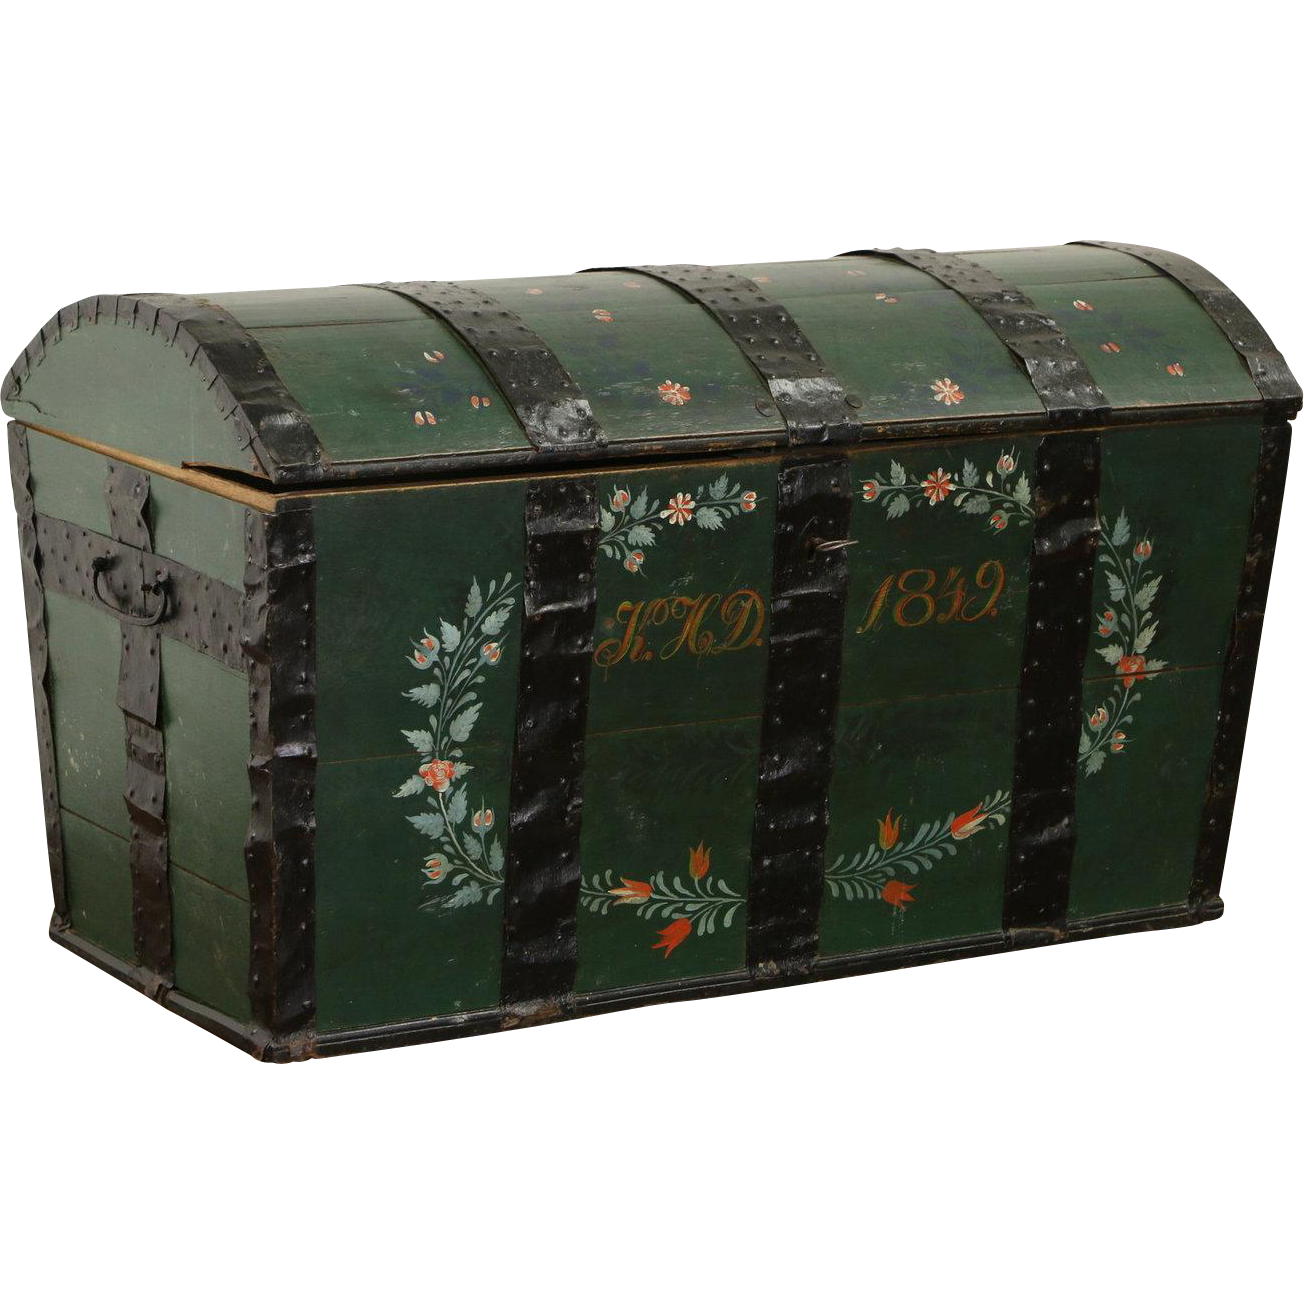 Hand Painted Oak Scandinavian Immigrant Trunk, Dated 1849, Working Lock